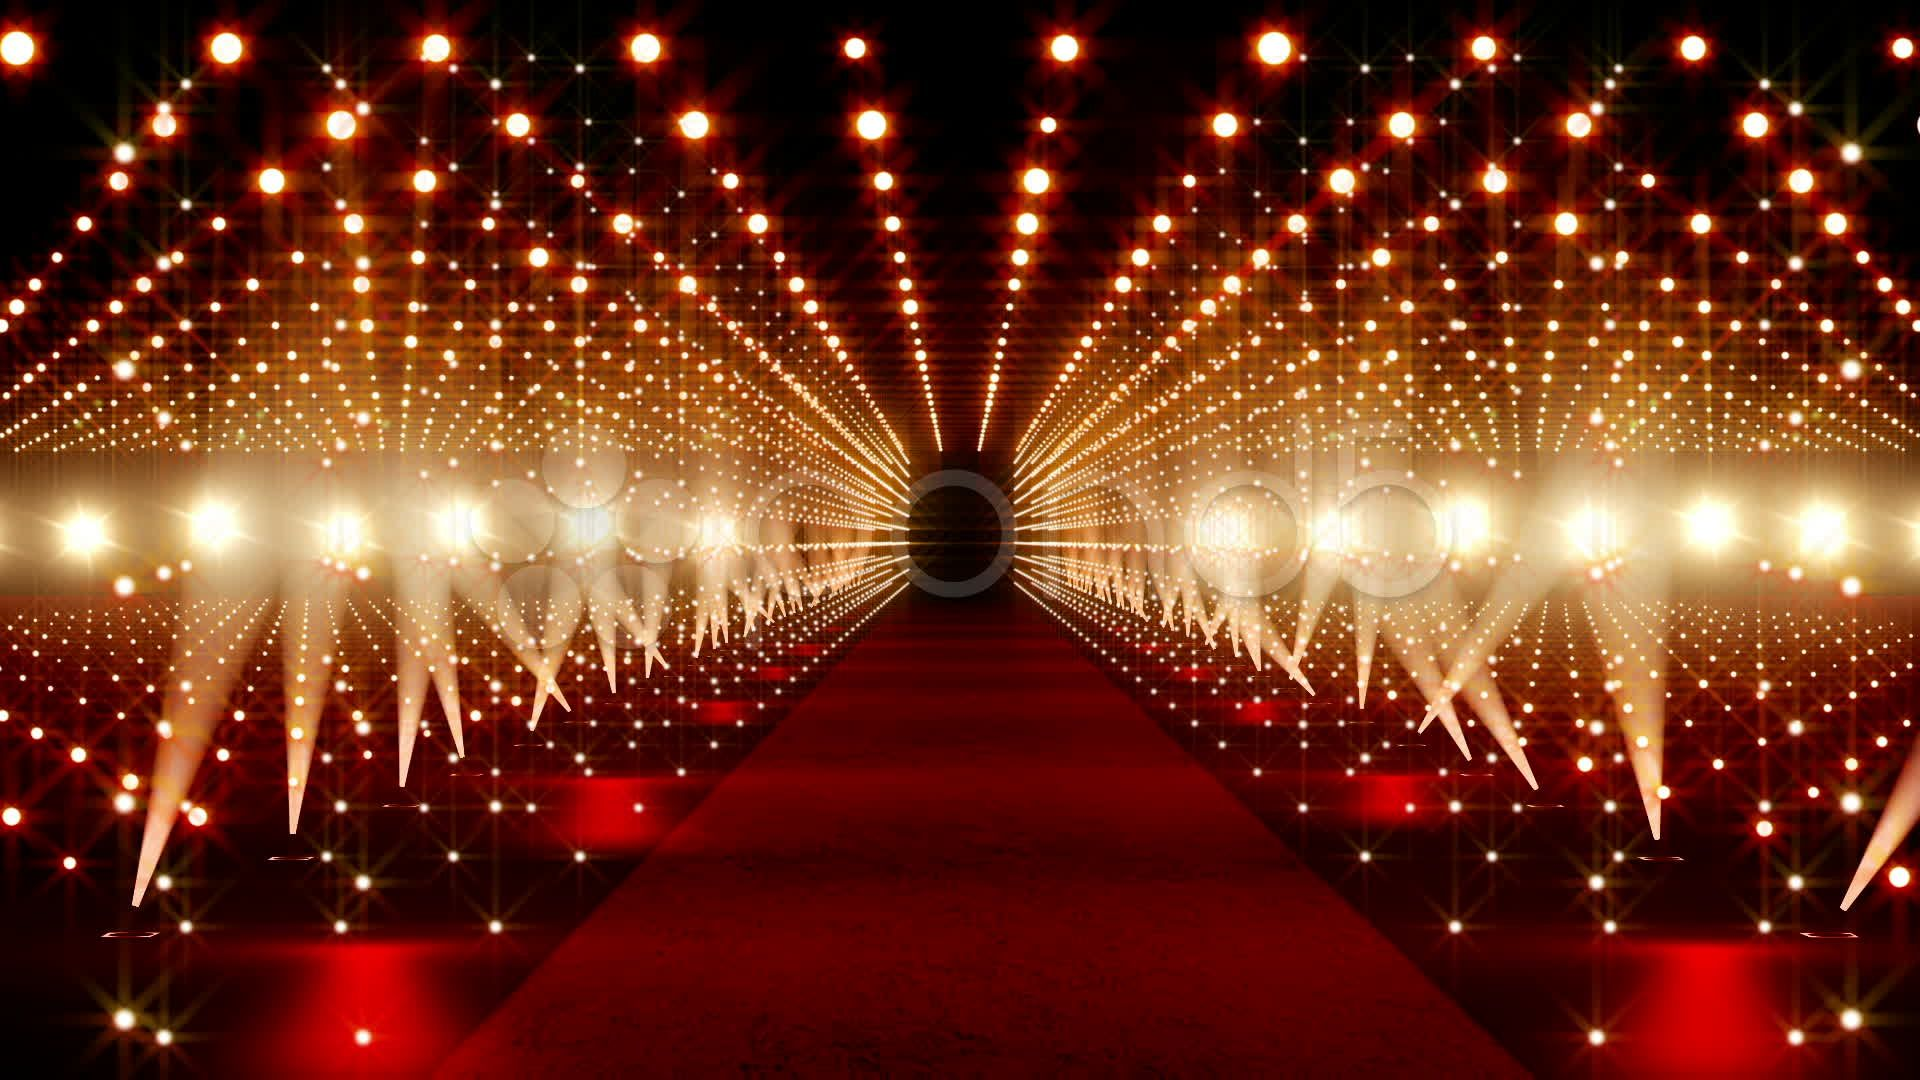 On The Red Carpet 10 Stock Video 10603131 Hd Stock Footage Red Carpet Backdrop Red Carpet Background Wallpaper